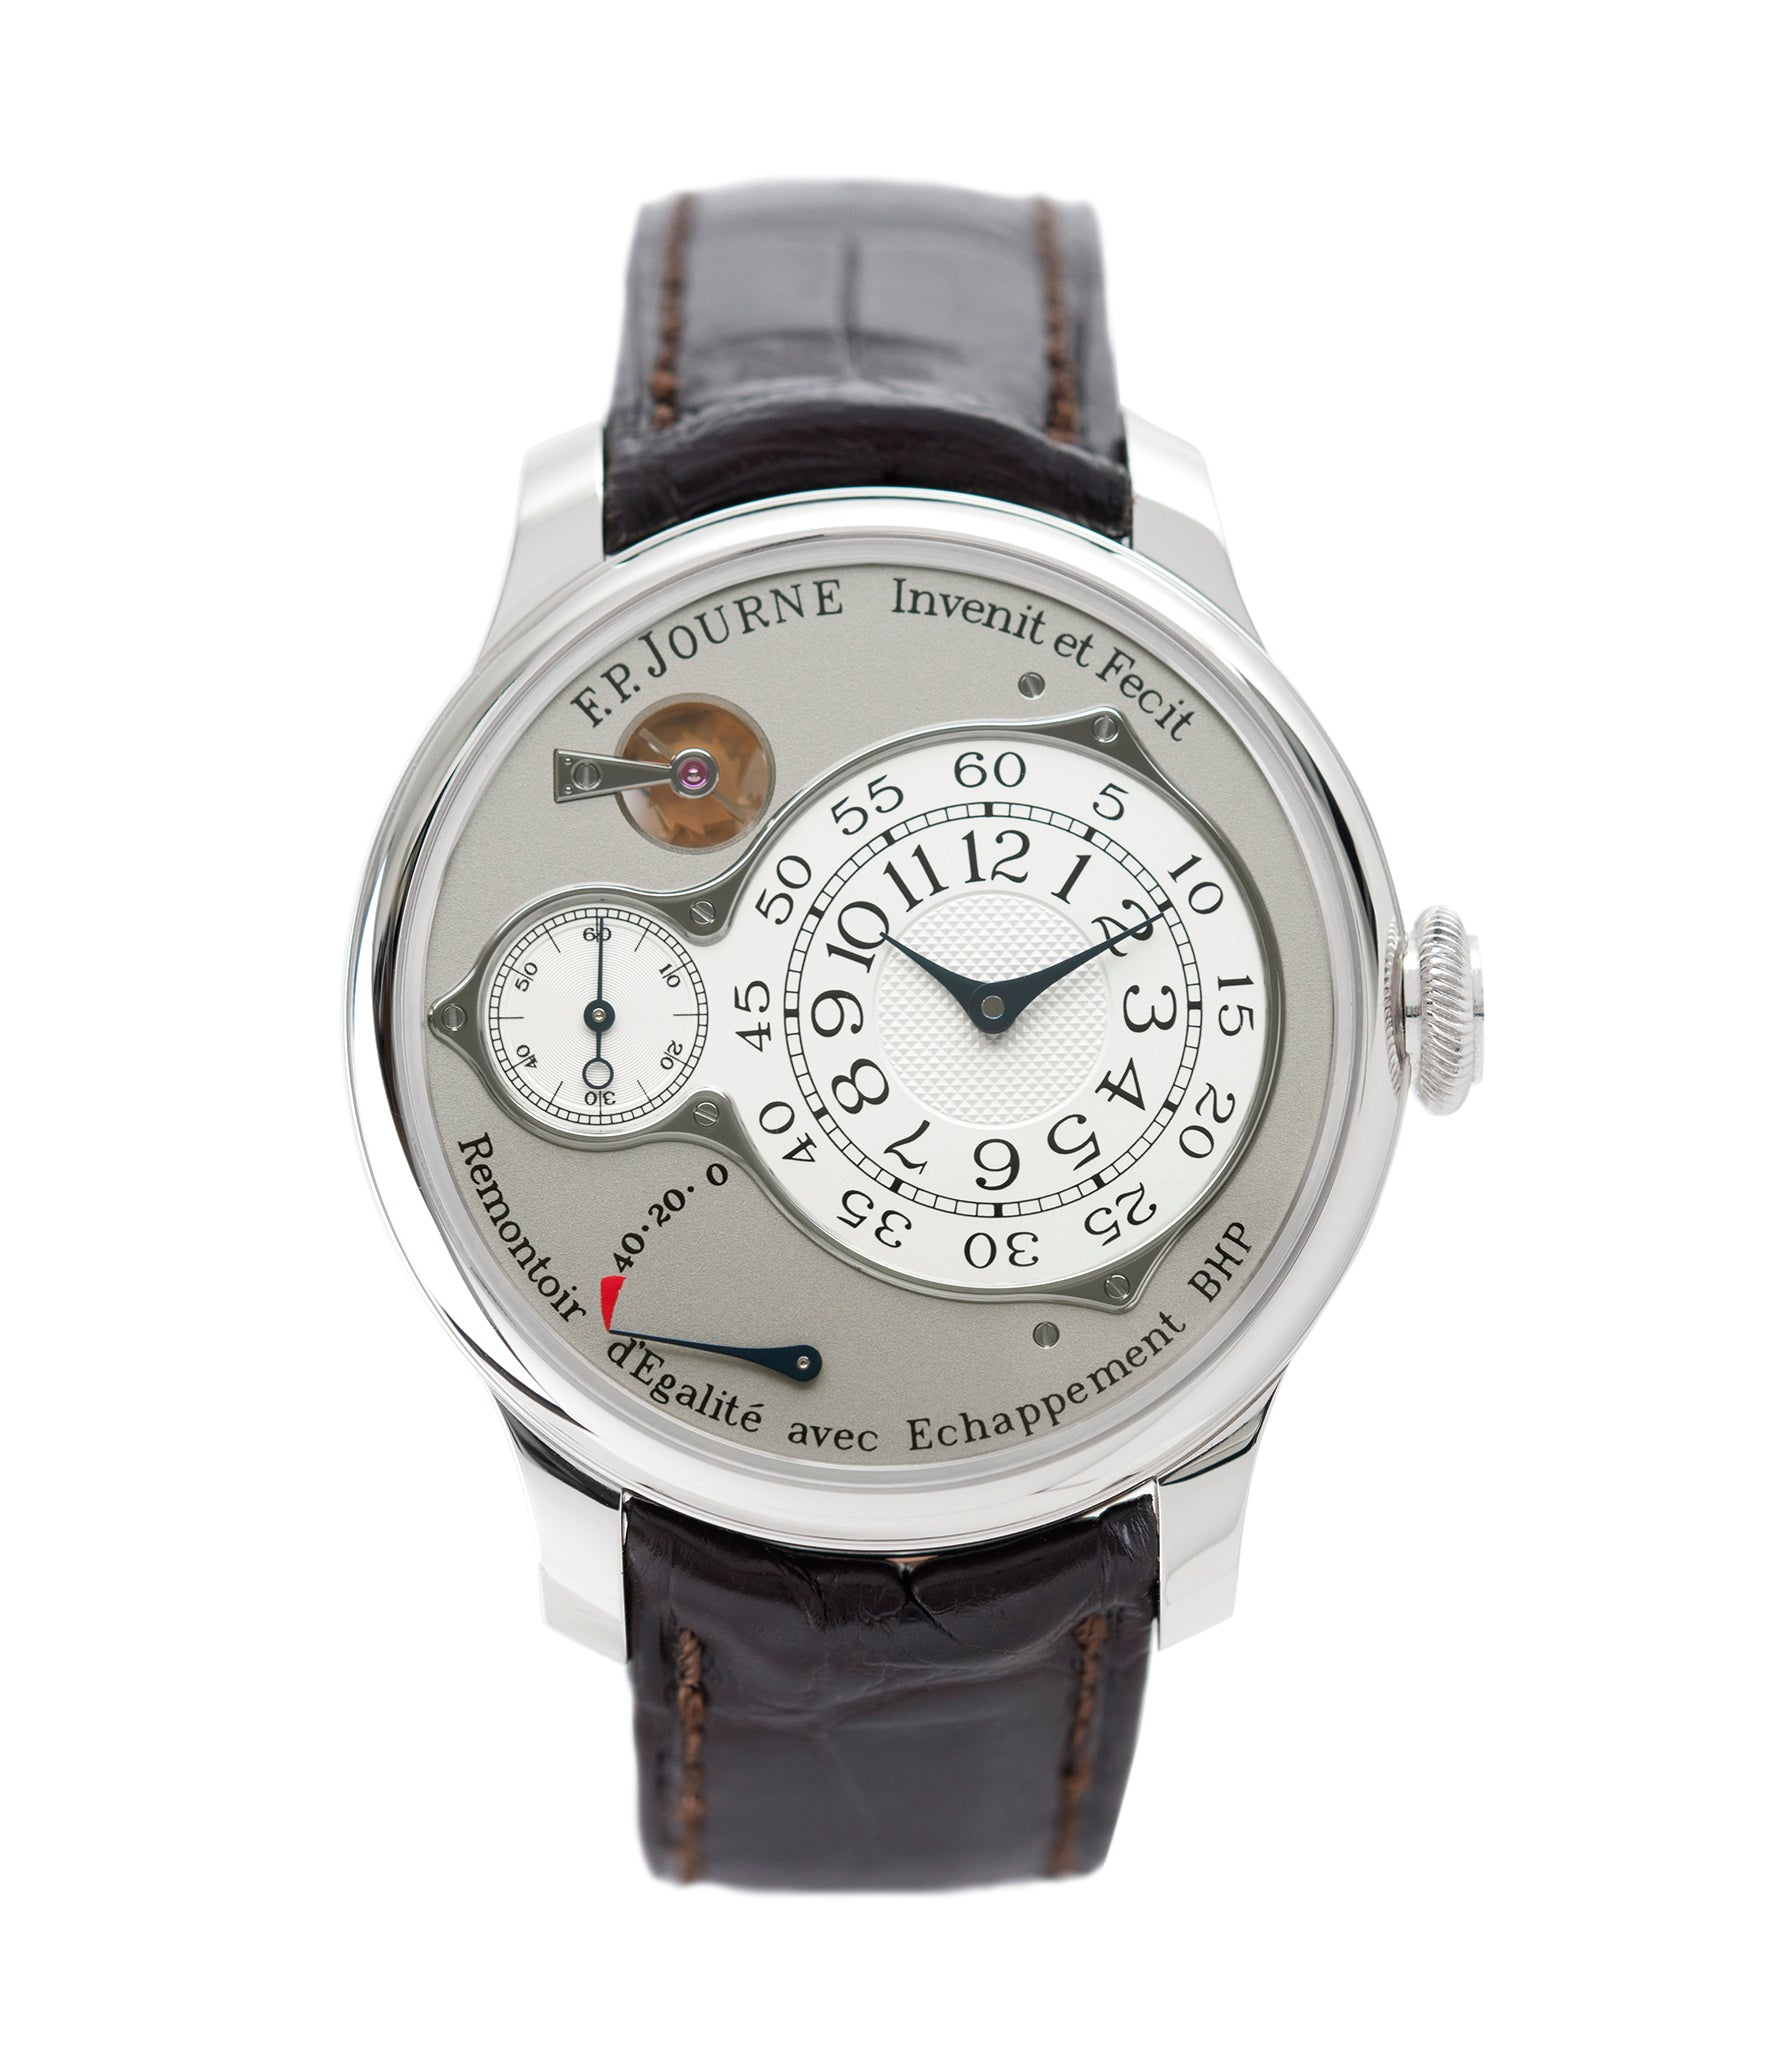 buy F. P. Journe Chronometre Optimum platinum rare watch for sale online at A Collected Man London approved retailer of independent watchmakers